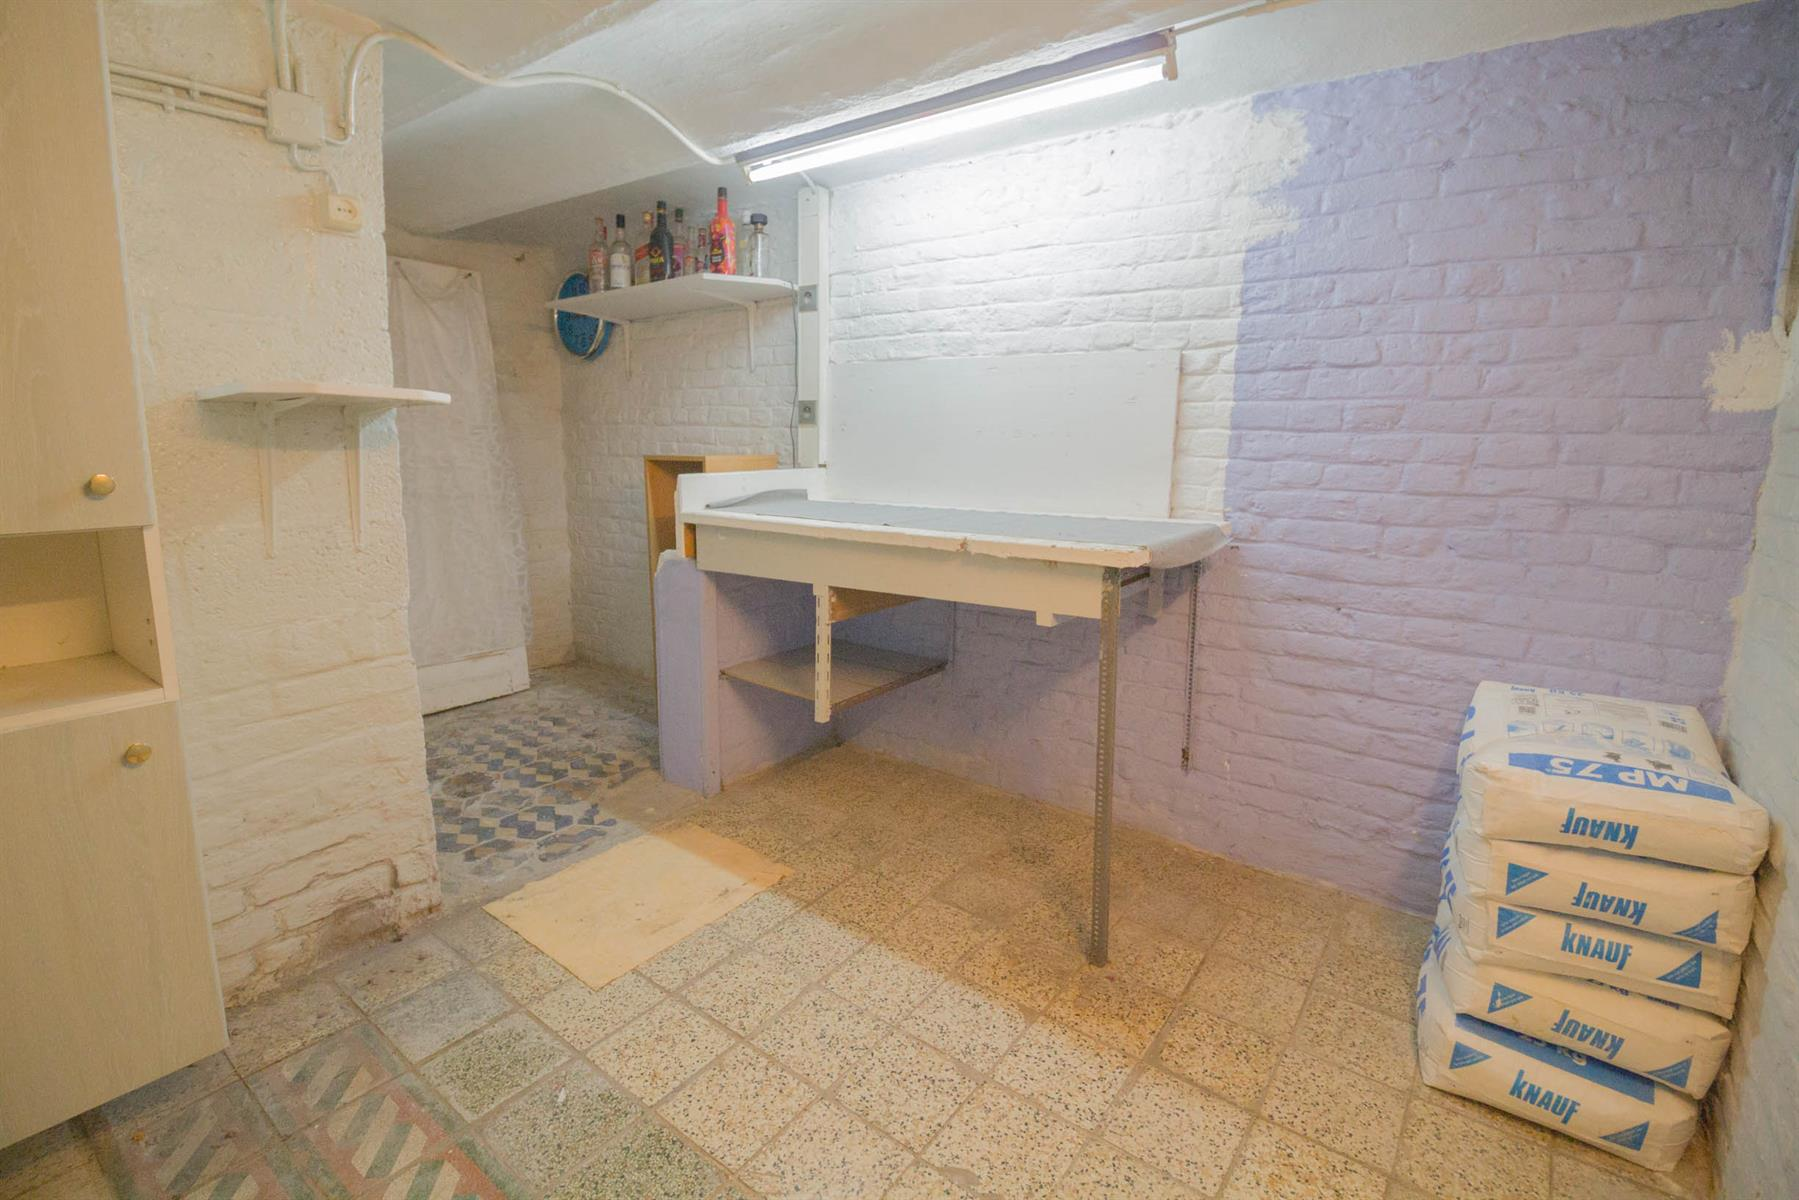 Maison - Courcelles (Trazegnies) - #4445047-19